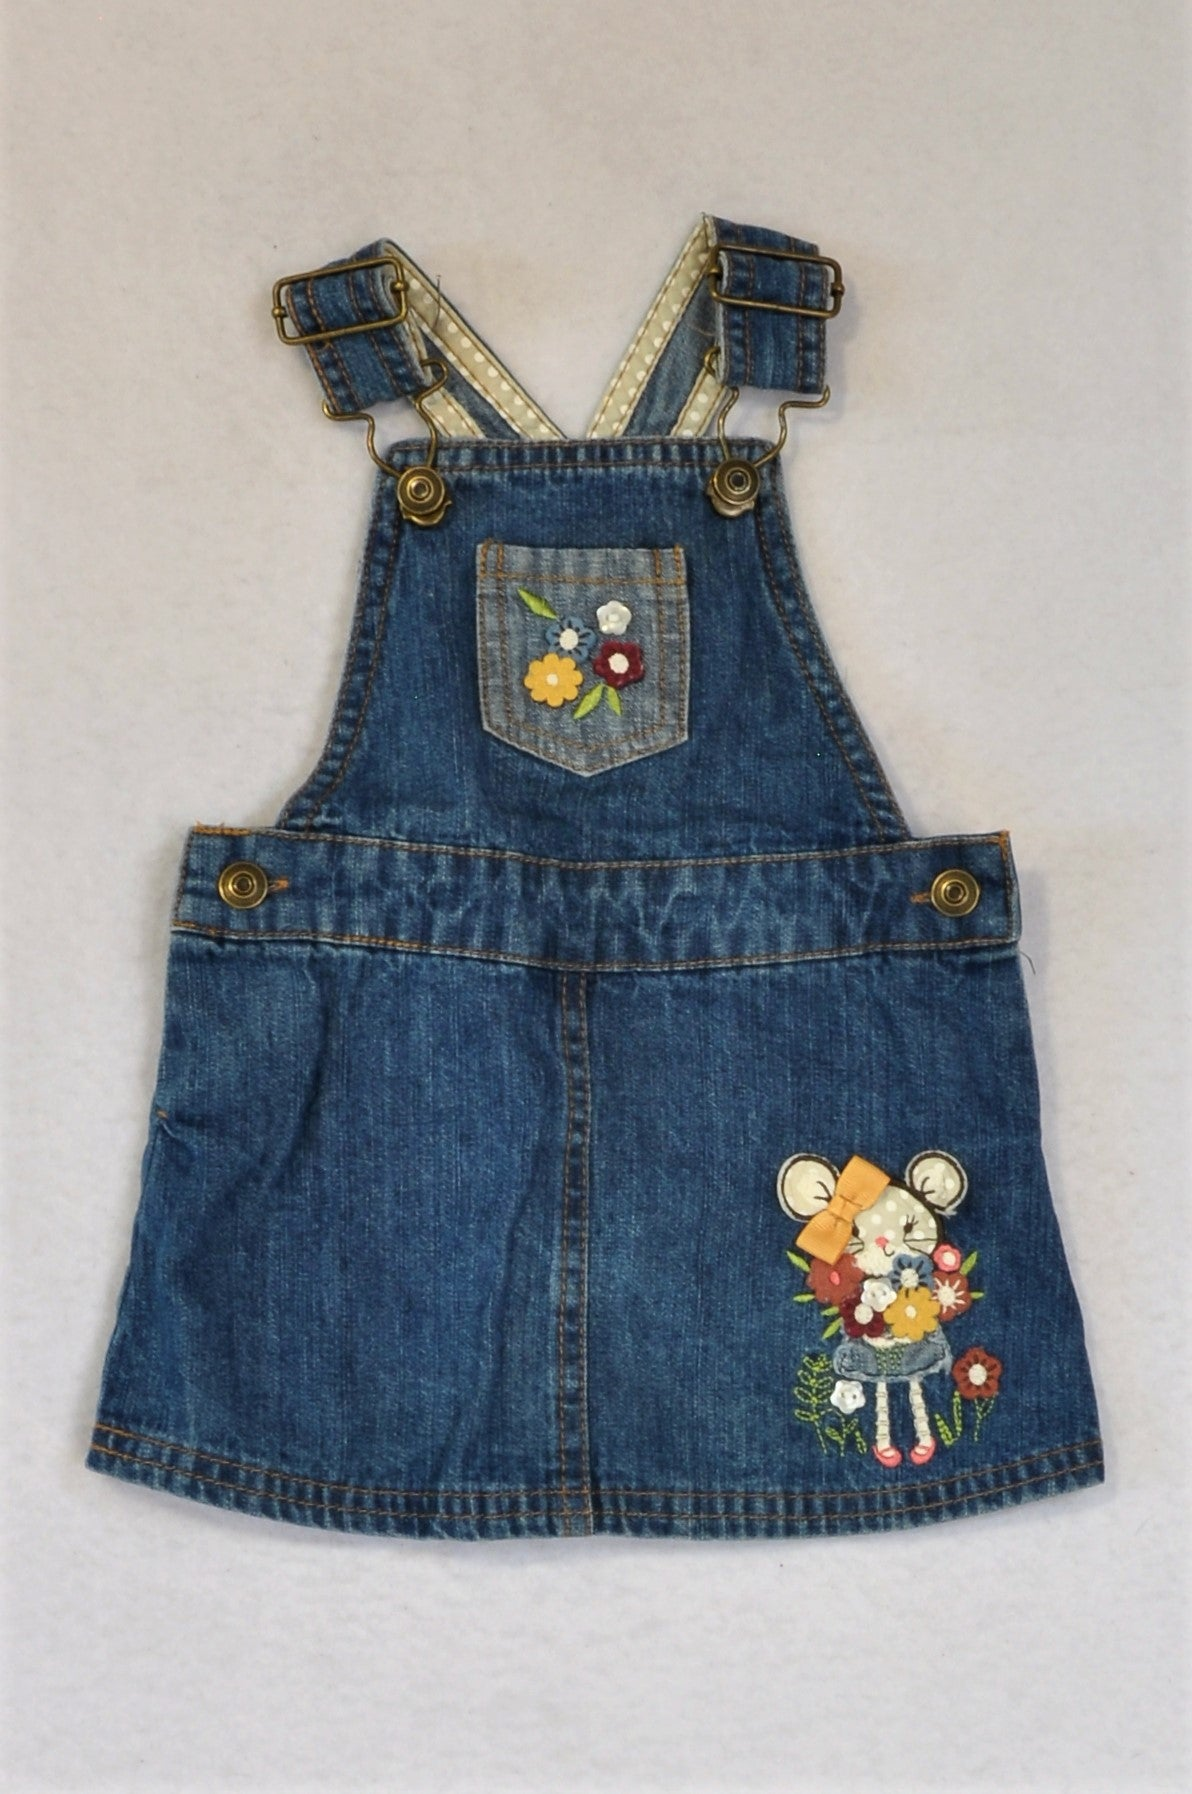 Unbranded Denim Embroidered Mouse Adjustable Dungaree Dress Girls 3-6 months